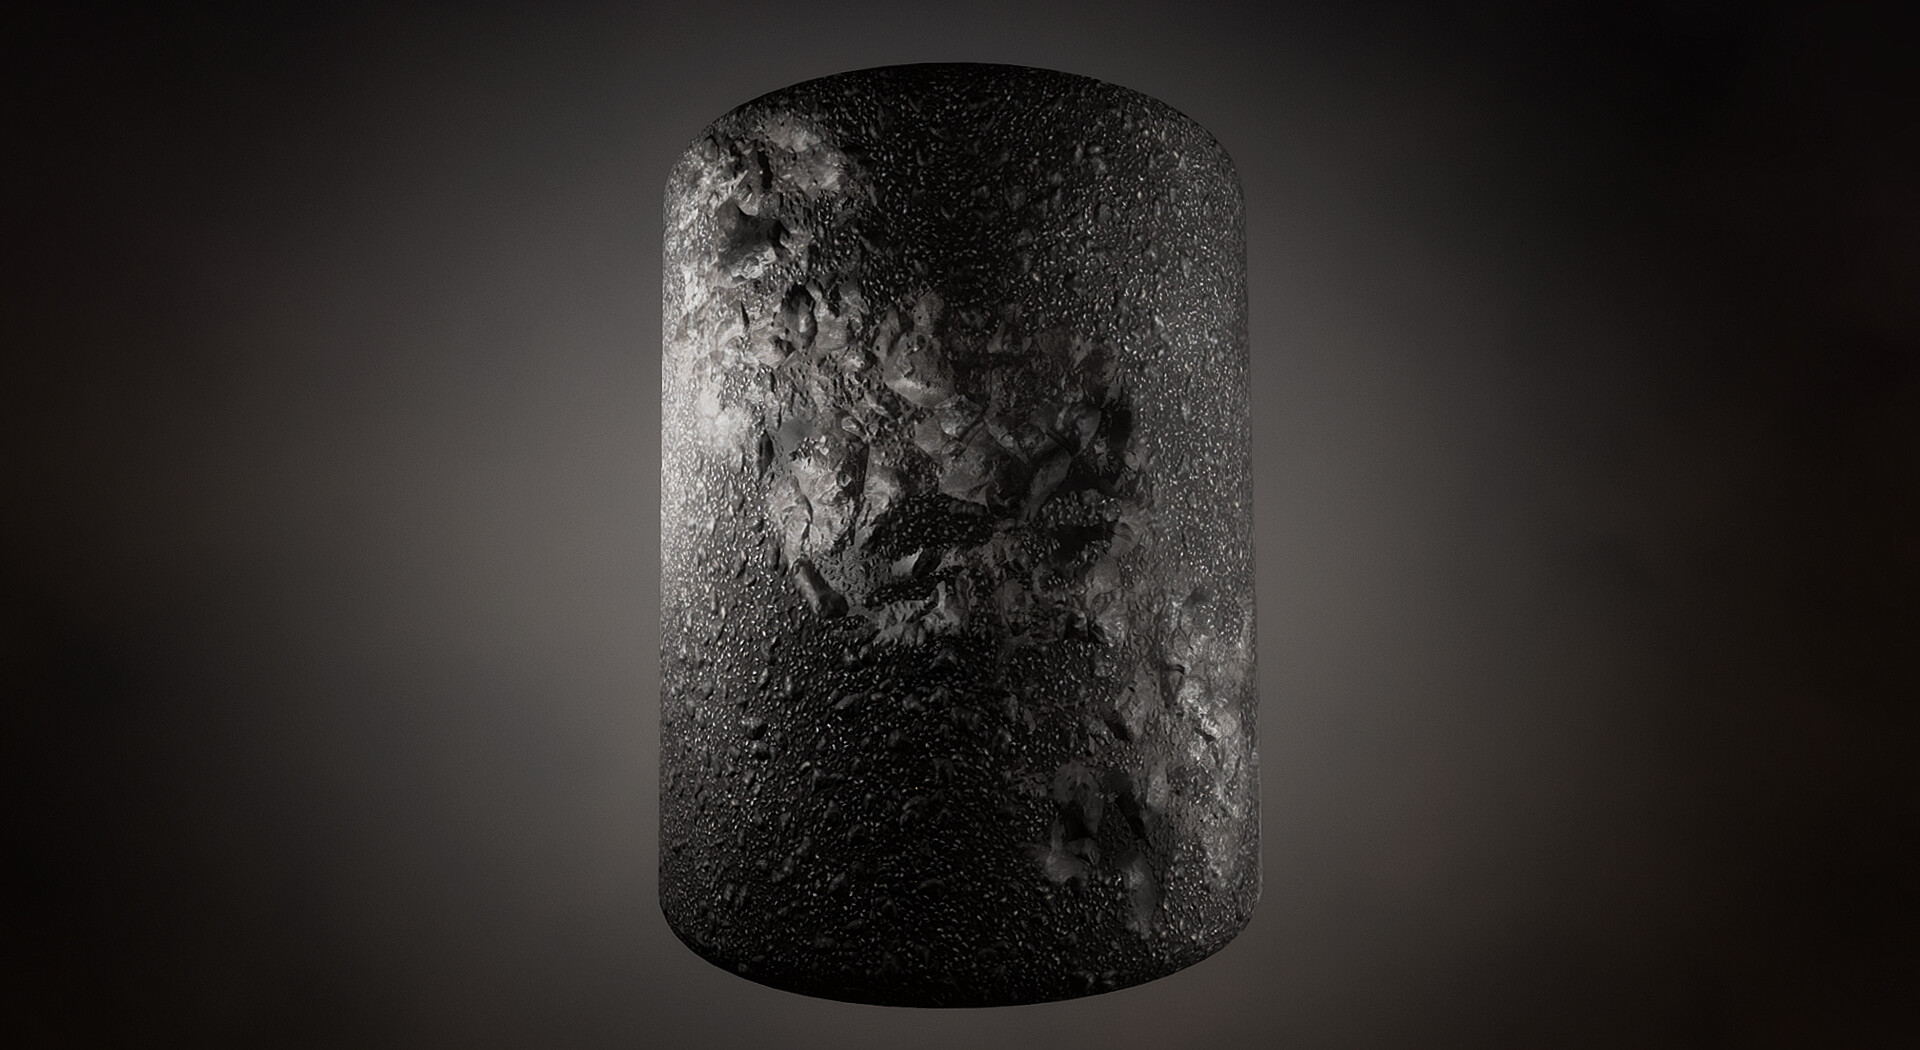 Material for Landscape - Two PBR set of textures with Shader that used Vertex Blending and Parallax Occlusion for more shape. Made With Substance Painter.